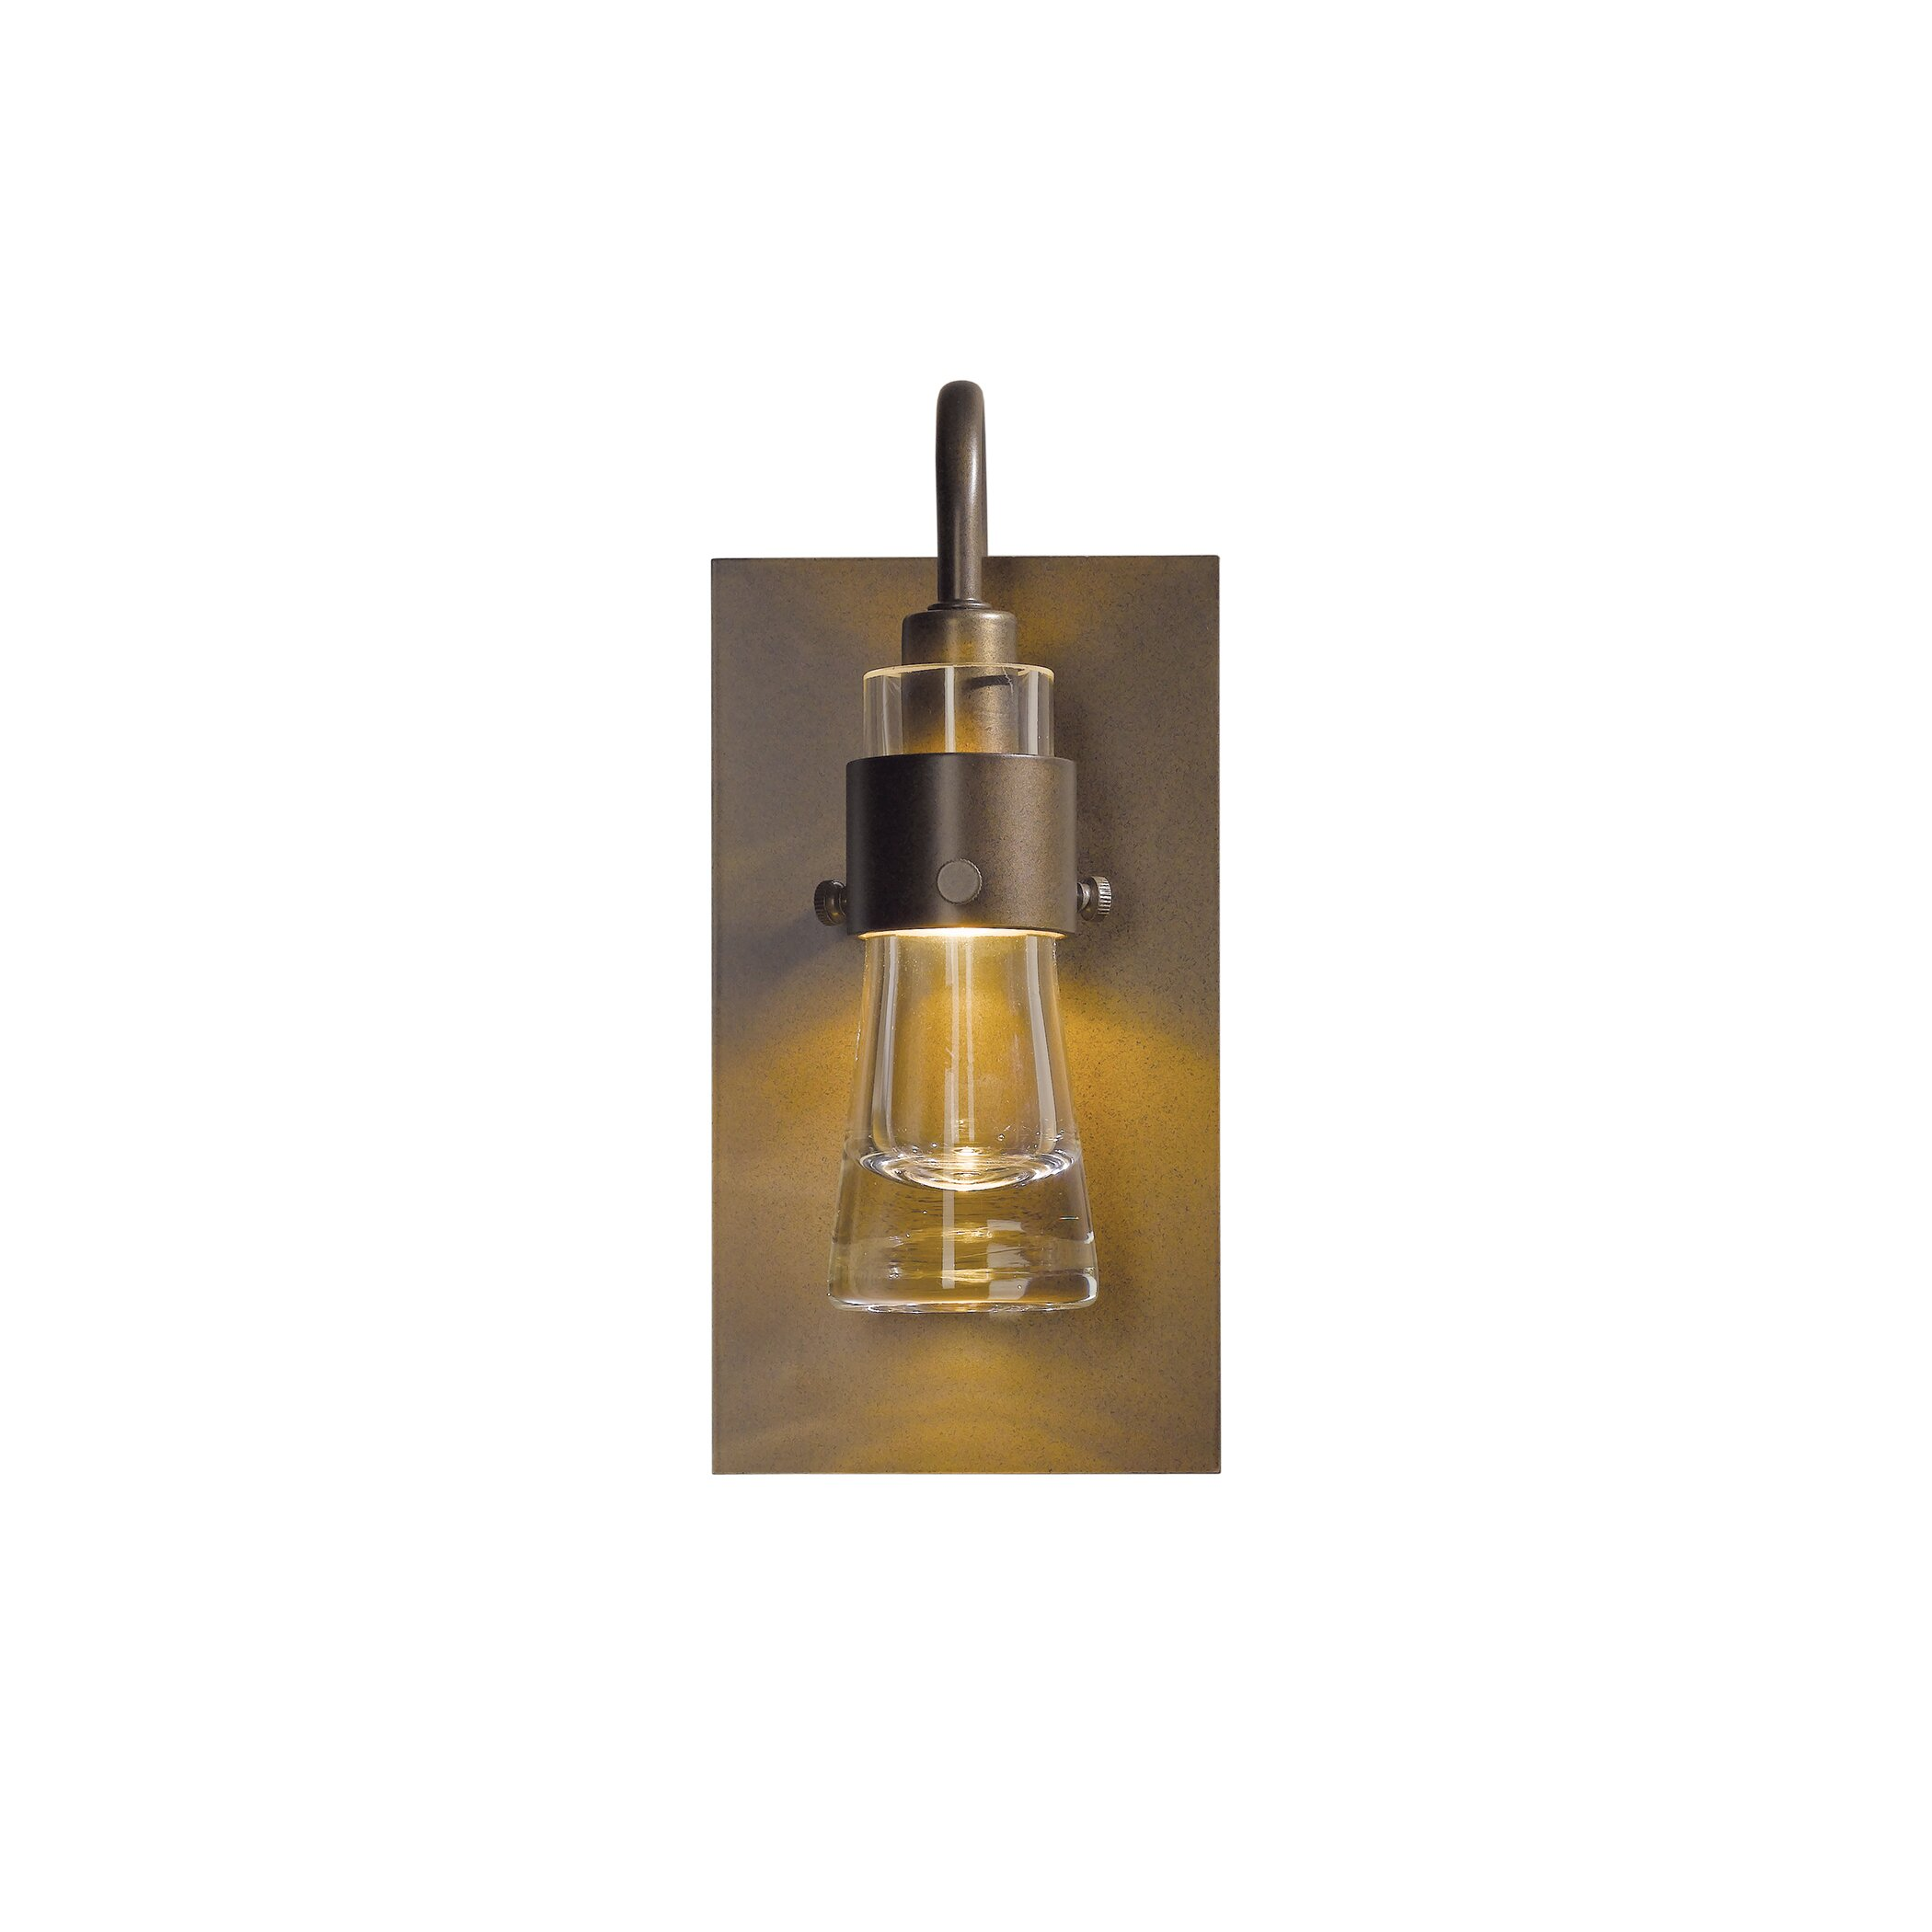 Hubbardton Forge Wall Lights: Hubbardton Forge Erlenmeyer 1 Light Wall Sconce & Reviews